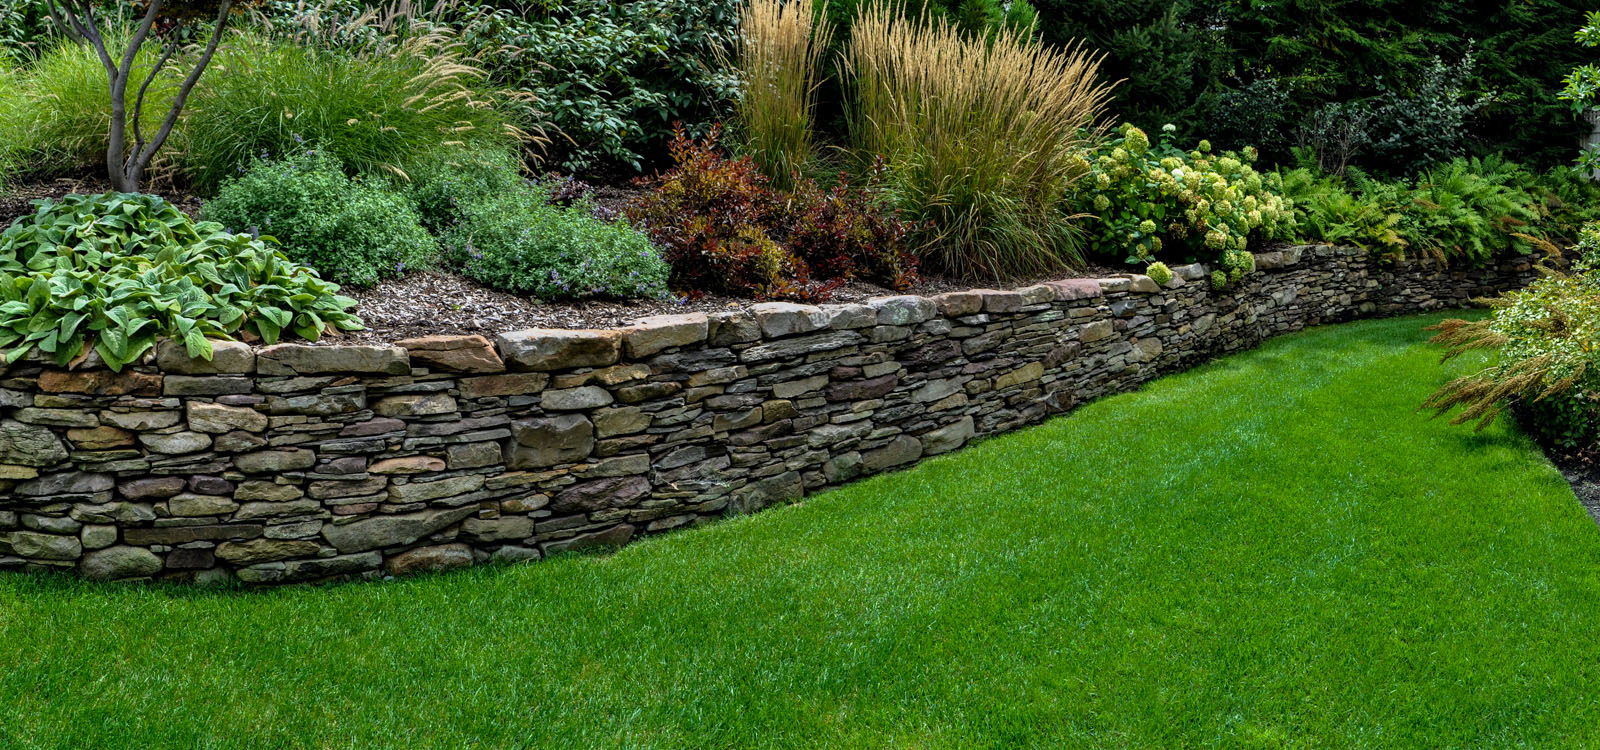 pennsylvania fieldstone retaining wall in nj landscape design